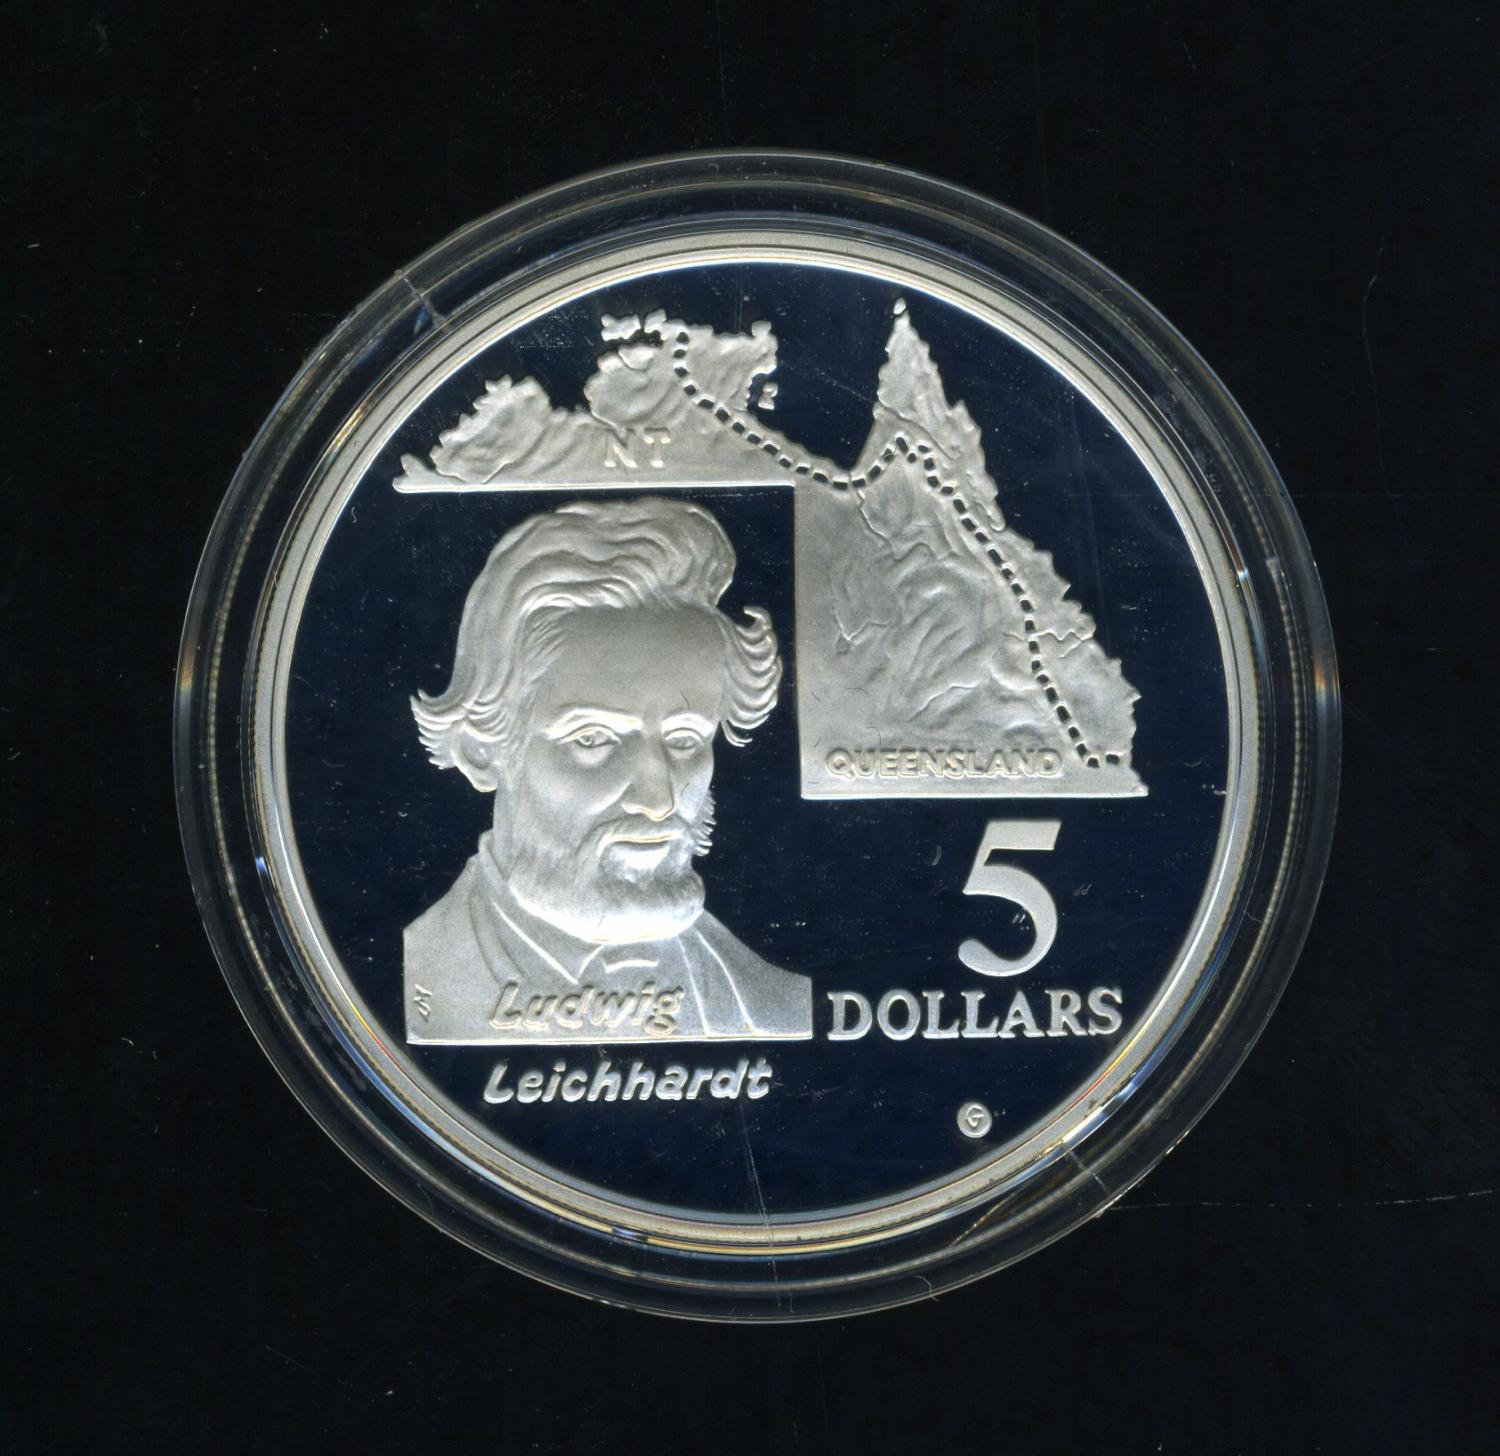 Thumbnail for 1994 Australian $5 Silver Coin From Masterpieces in Silver Set - Leichhardt.  The Coin is Sterling Silver and contains over 1oz of Pure Silver.